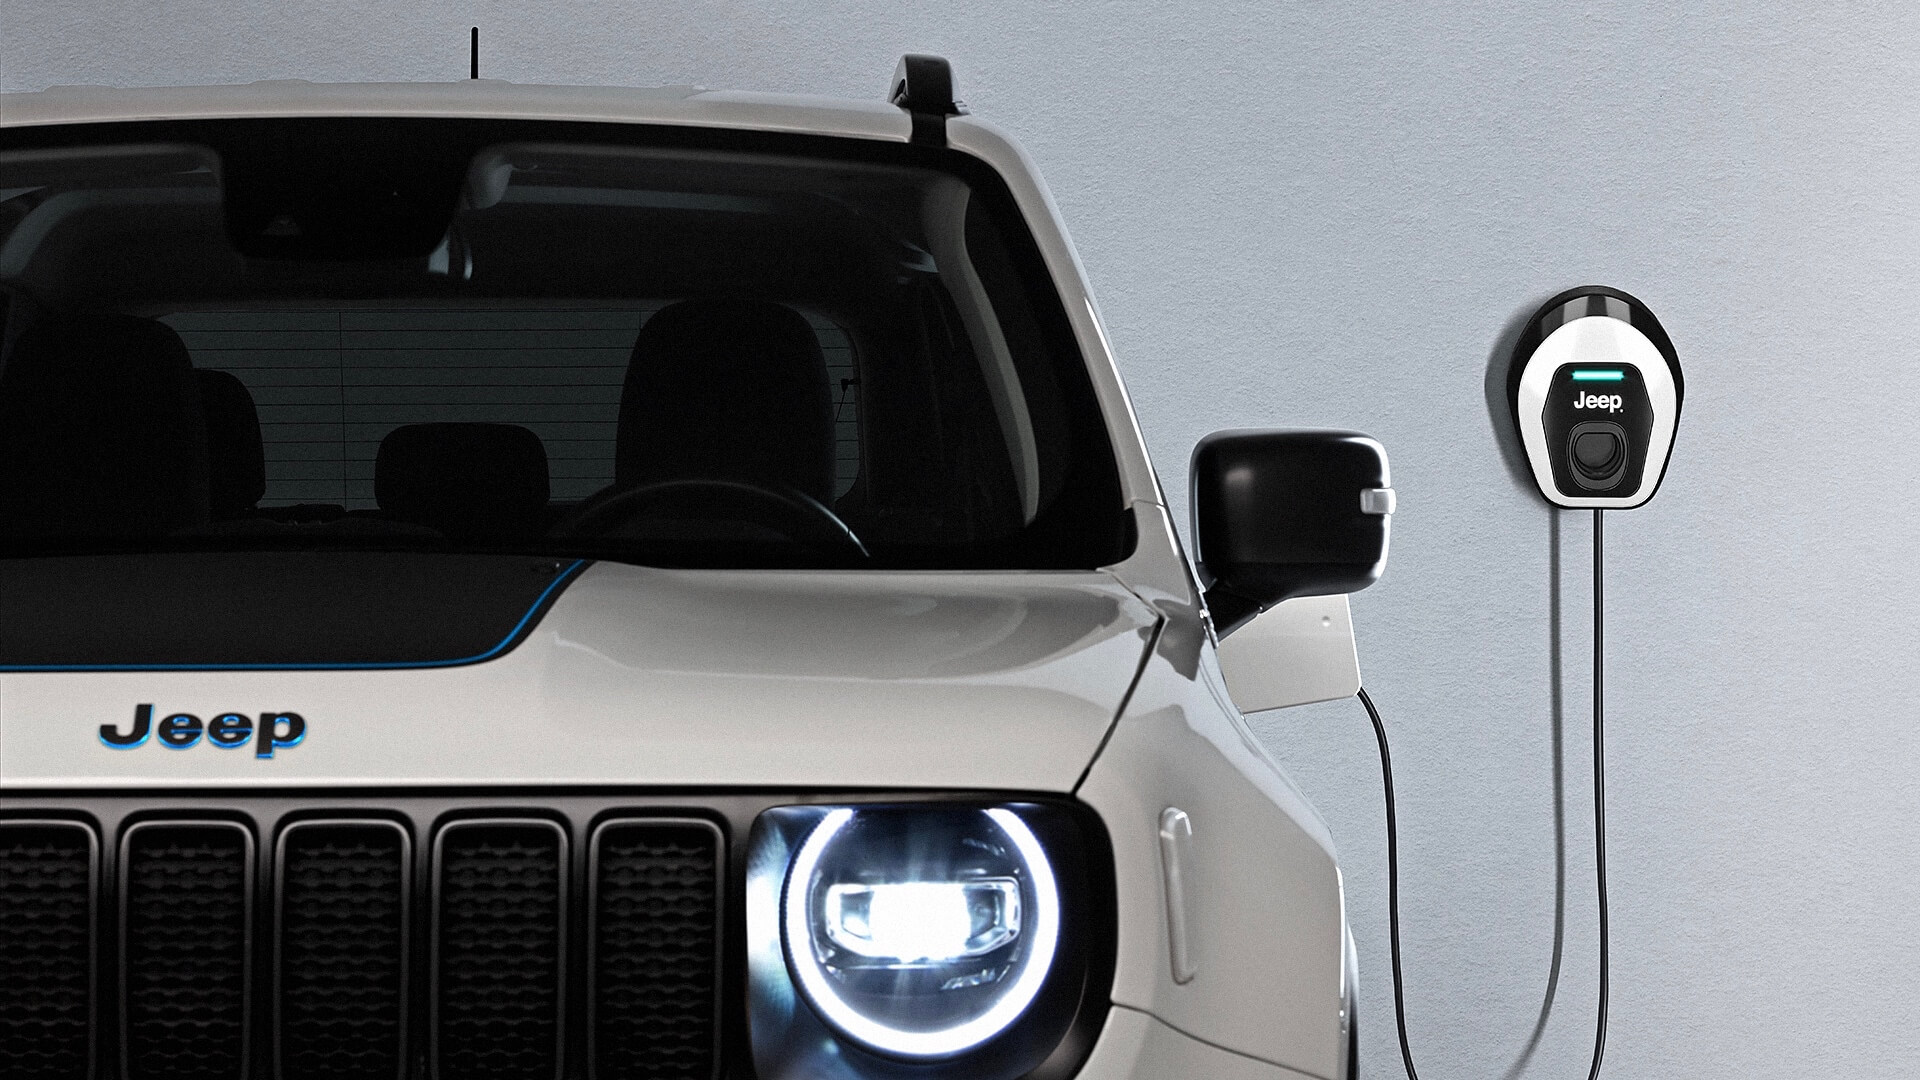 Jeep Renegade plug in hybride opladen